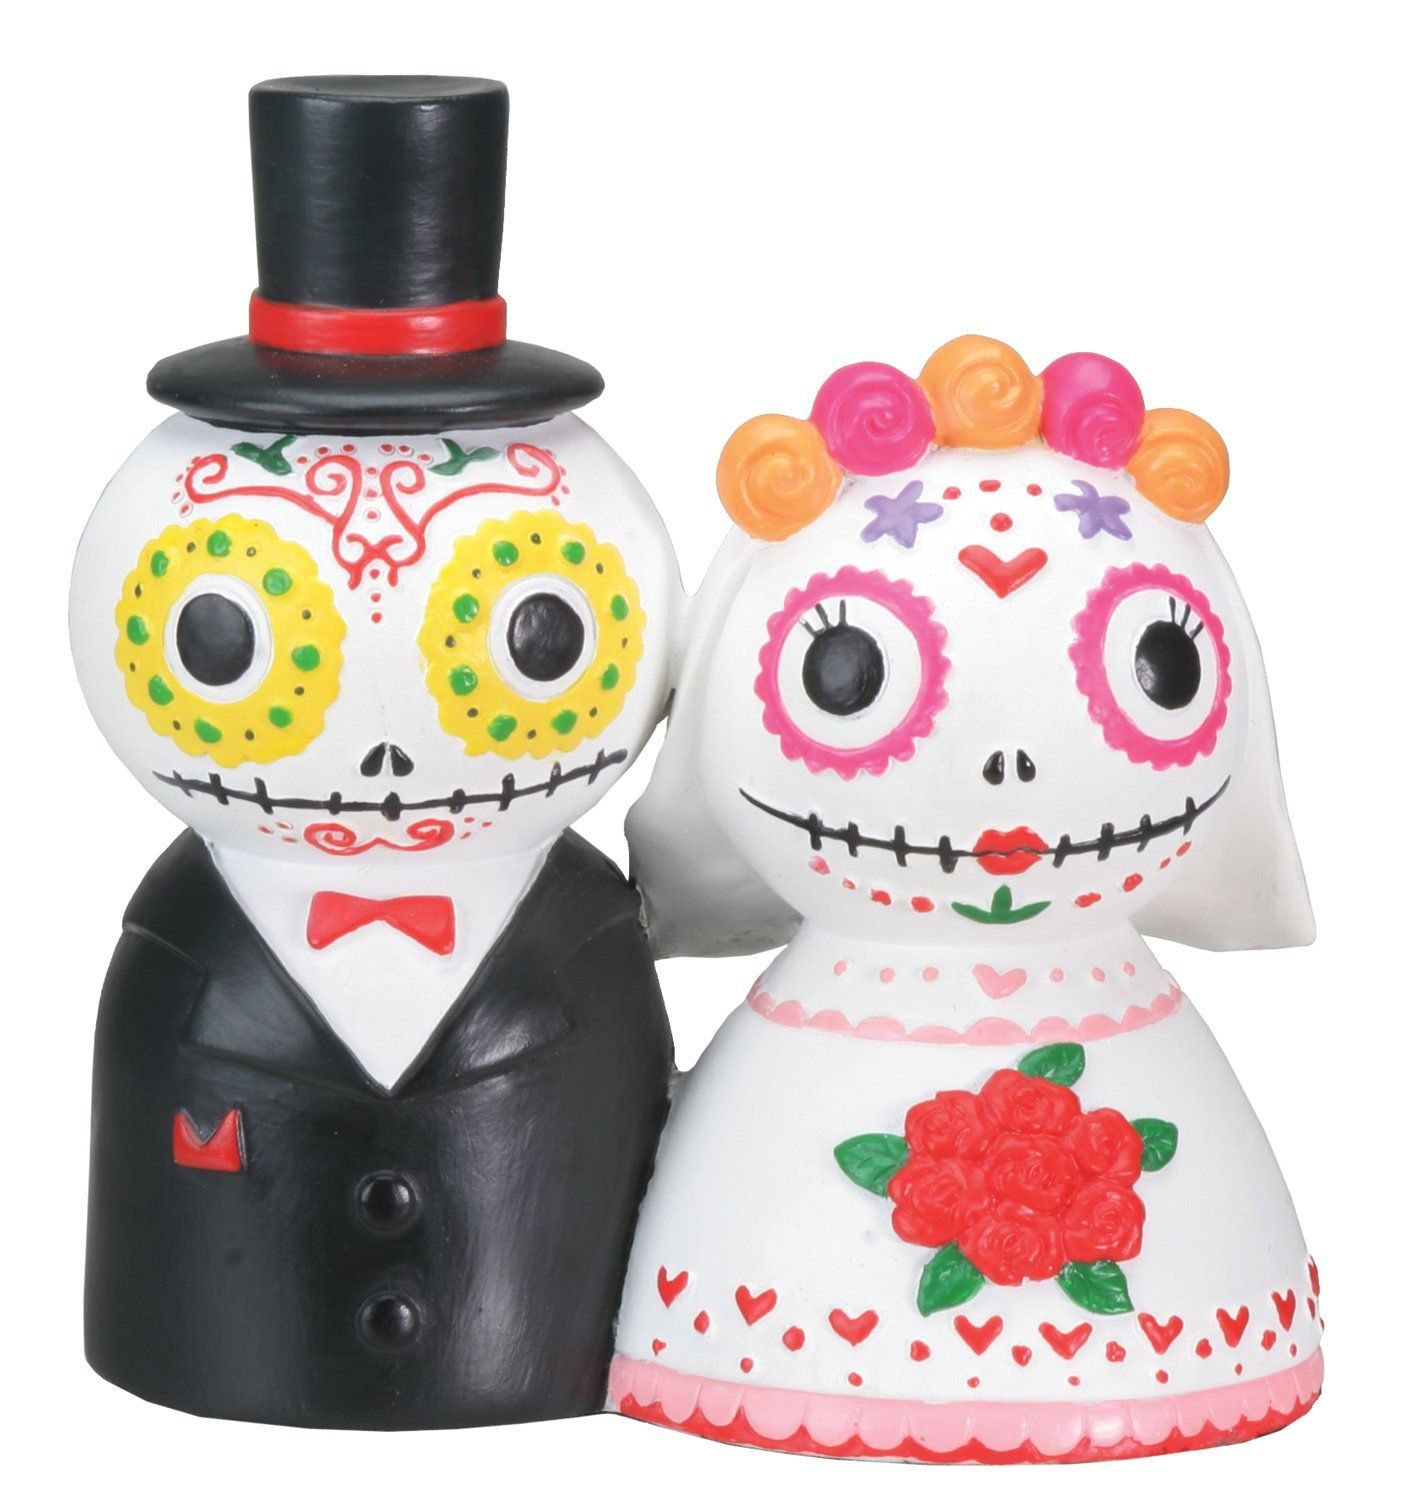 Day Of The Dead Wedding Couple Decoration - Click The Image To Buy ...